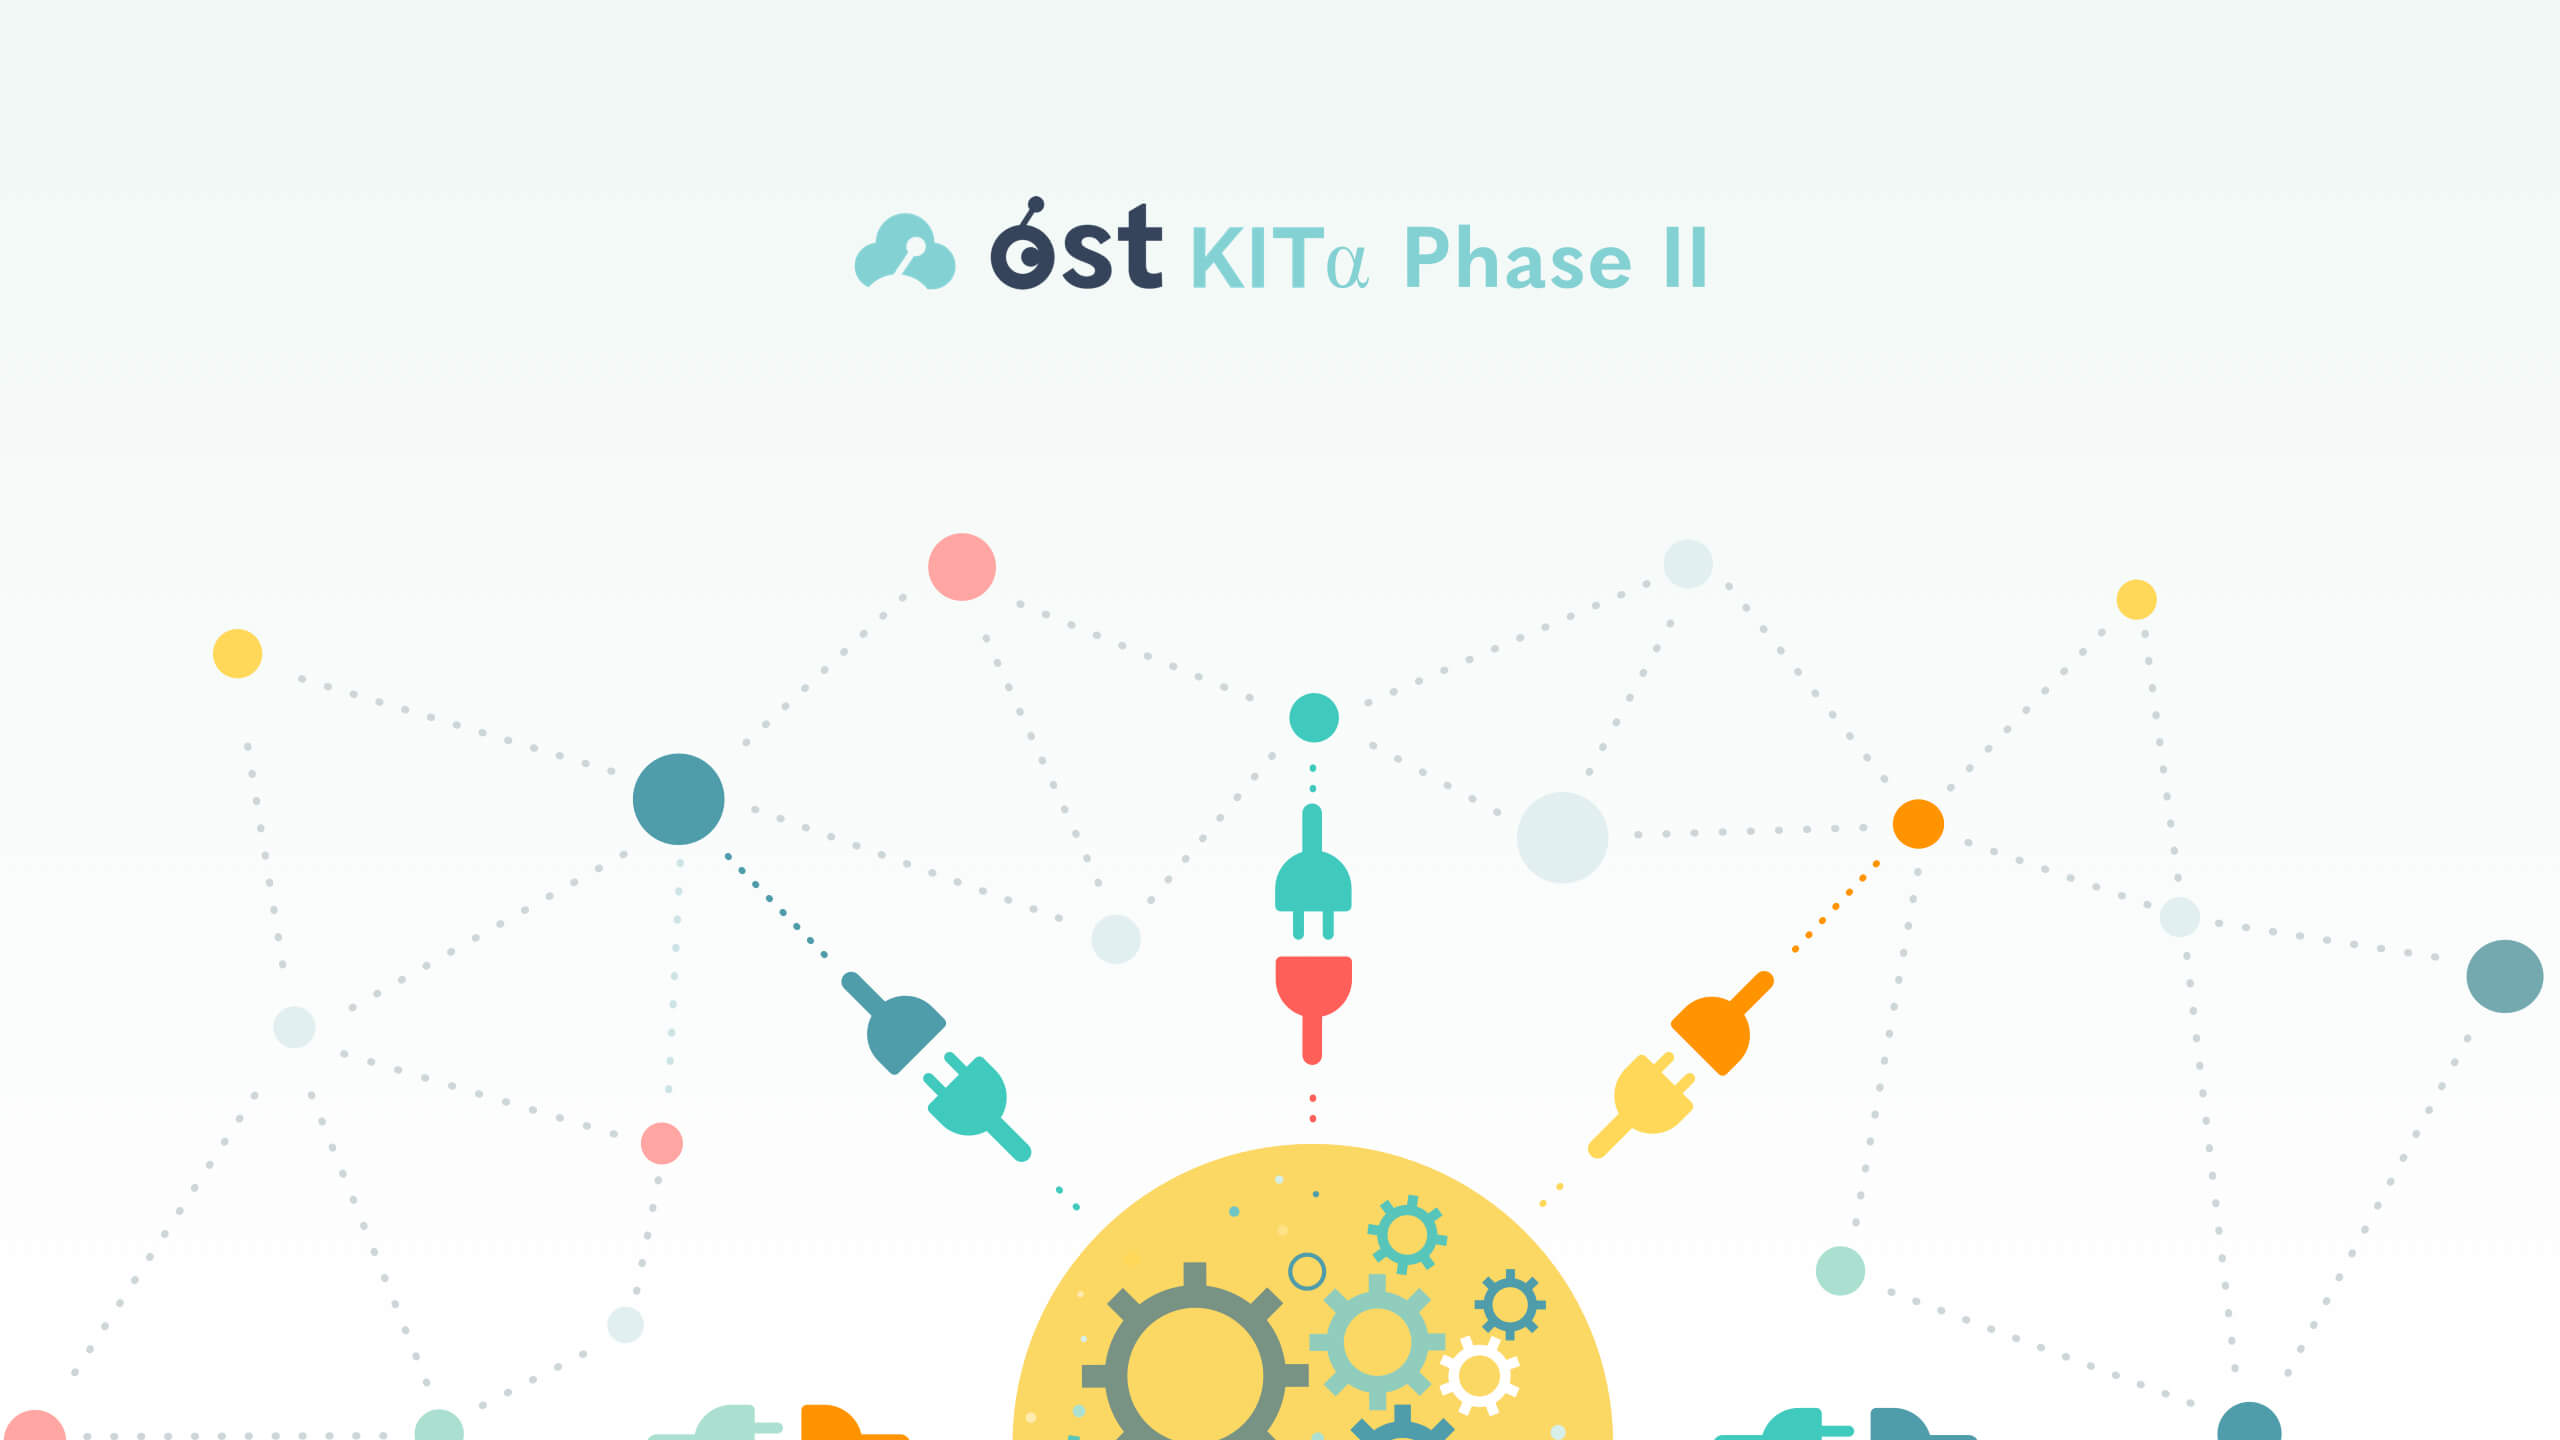 Kicking off OST KIT⍺ Phase II: Developer Proofs of Concept Challenge